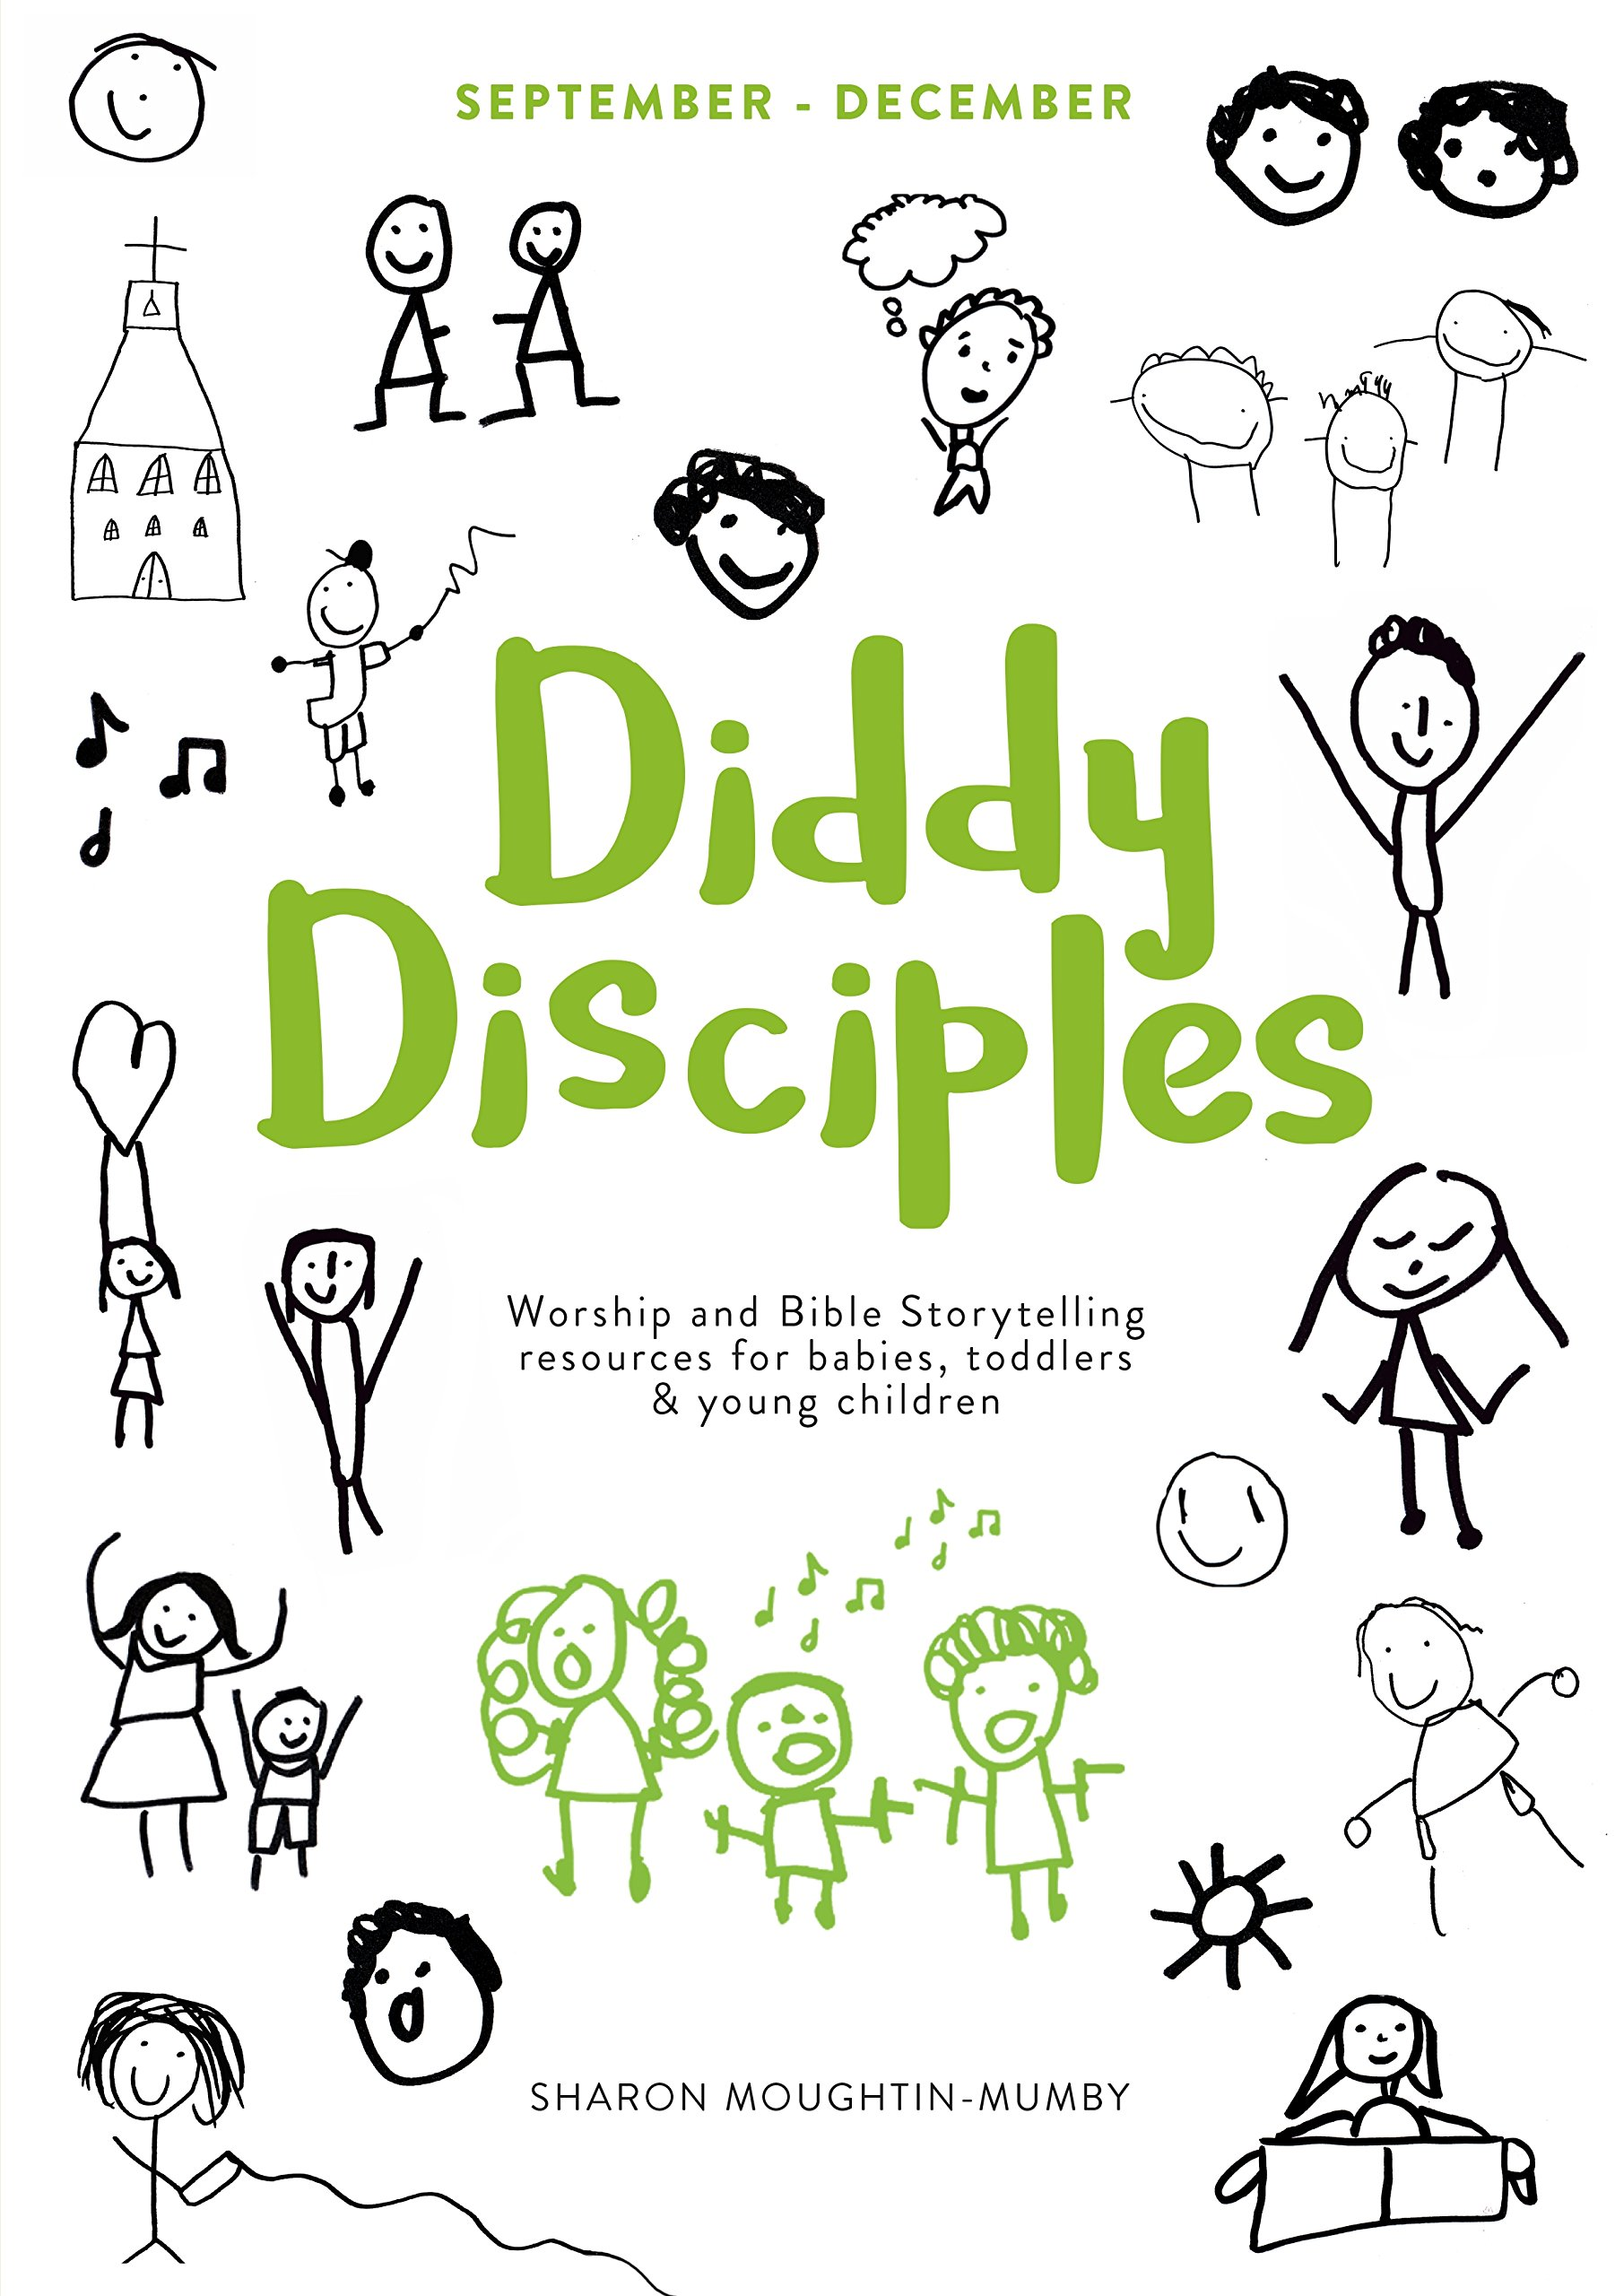 Diddy Disciples 1: September to December: Worship And Storytelling Resources For Babies, Toddlers And Young Children.